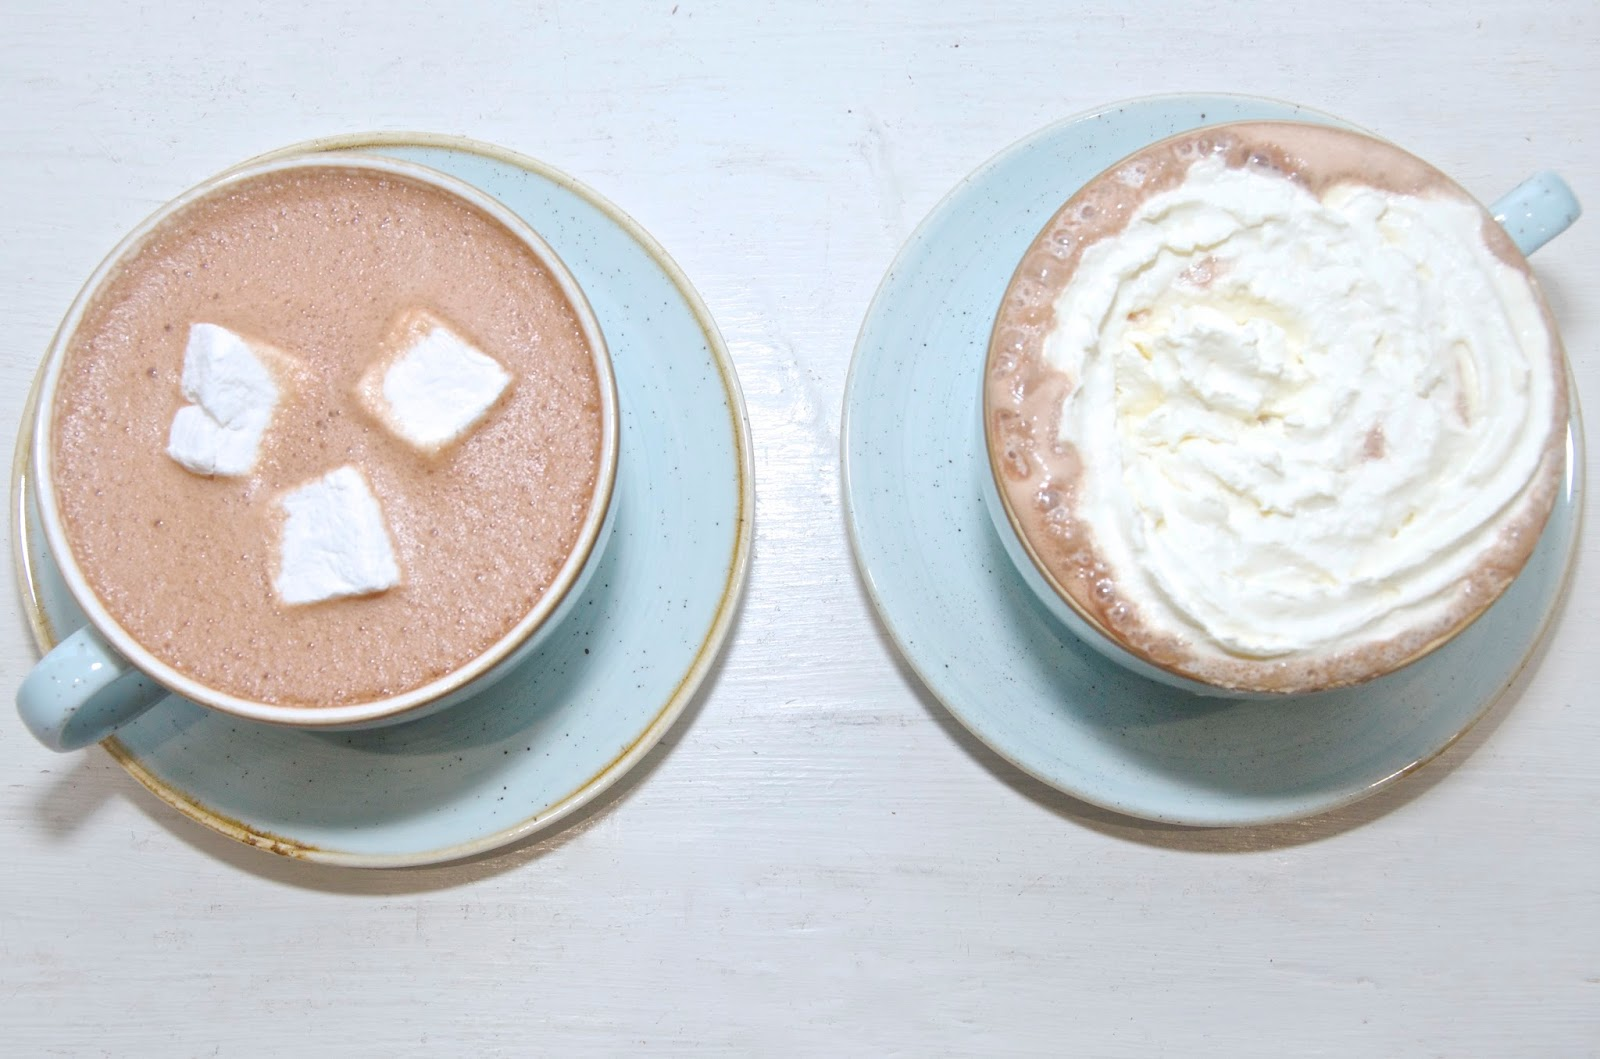 hot chocolate with marshmallows & whipped cream